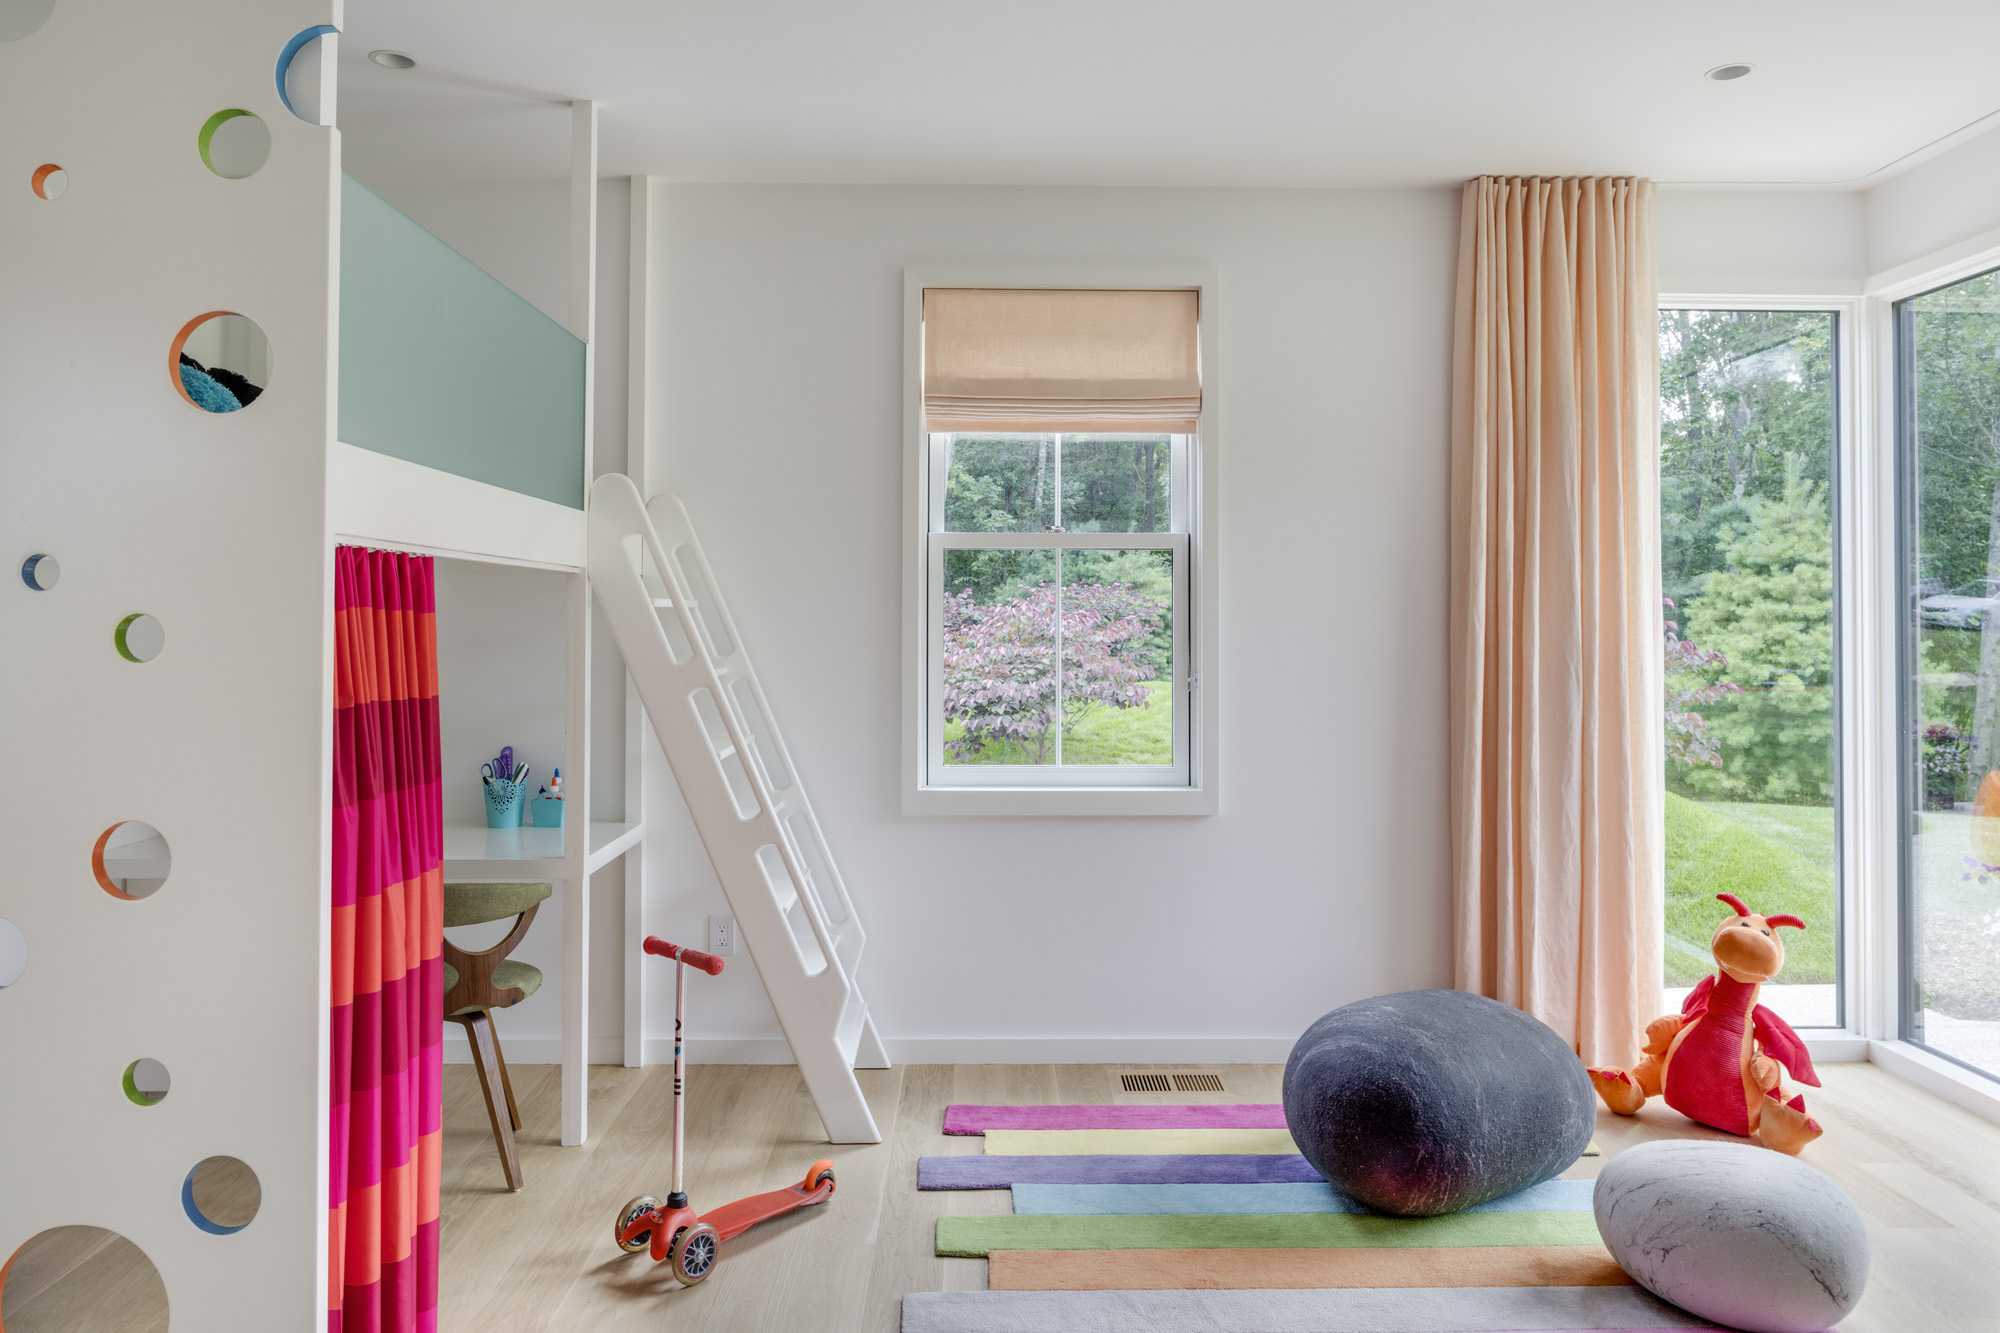 Stripes and rich colors, paired with bright white walls,make for a calming, whimsical playroom. The matching peach shades and curtains are from The Shade Store.